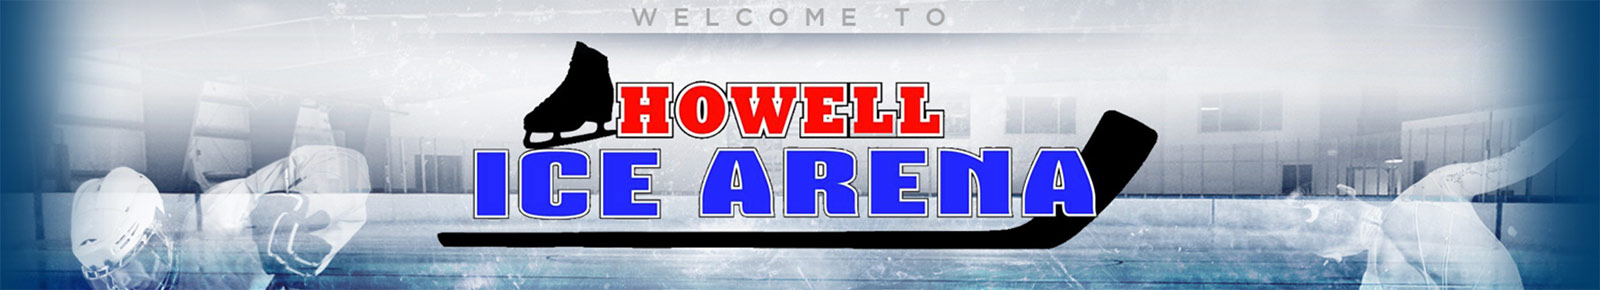 Image of Howell Ice Arena